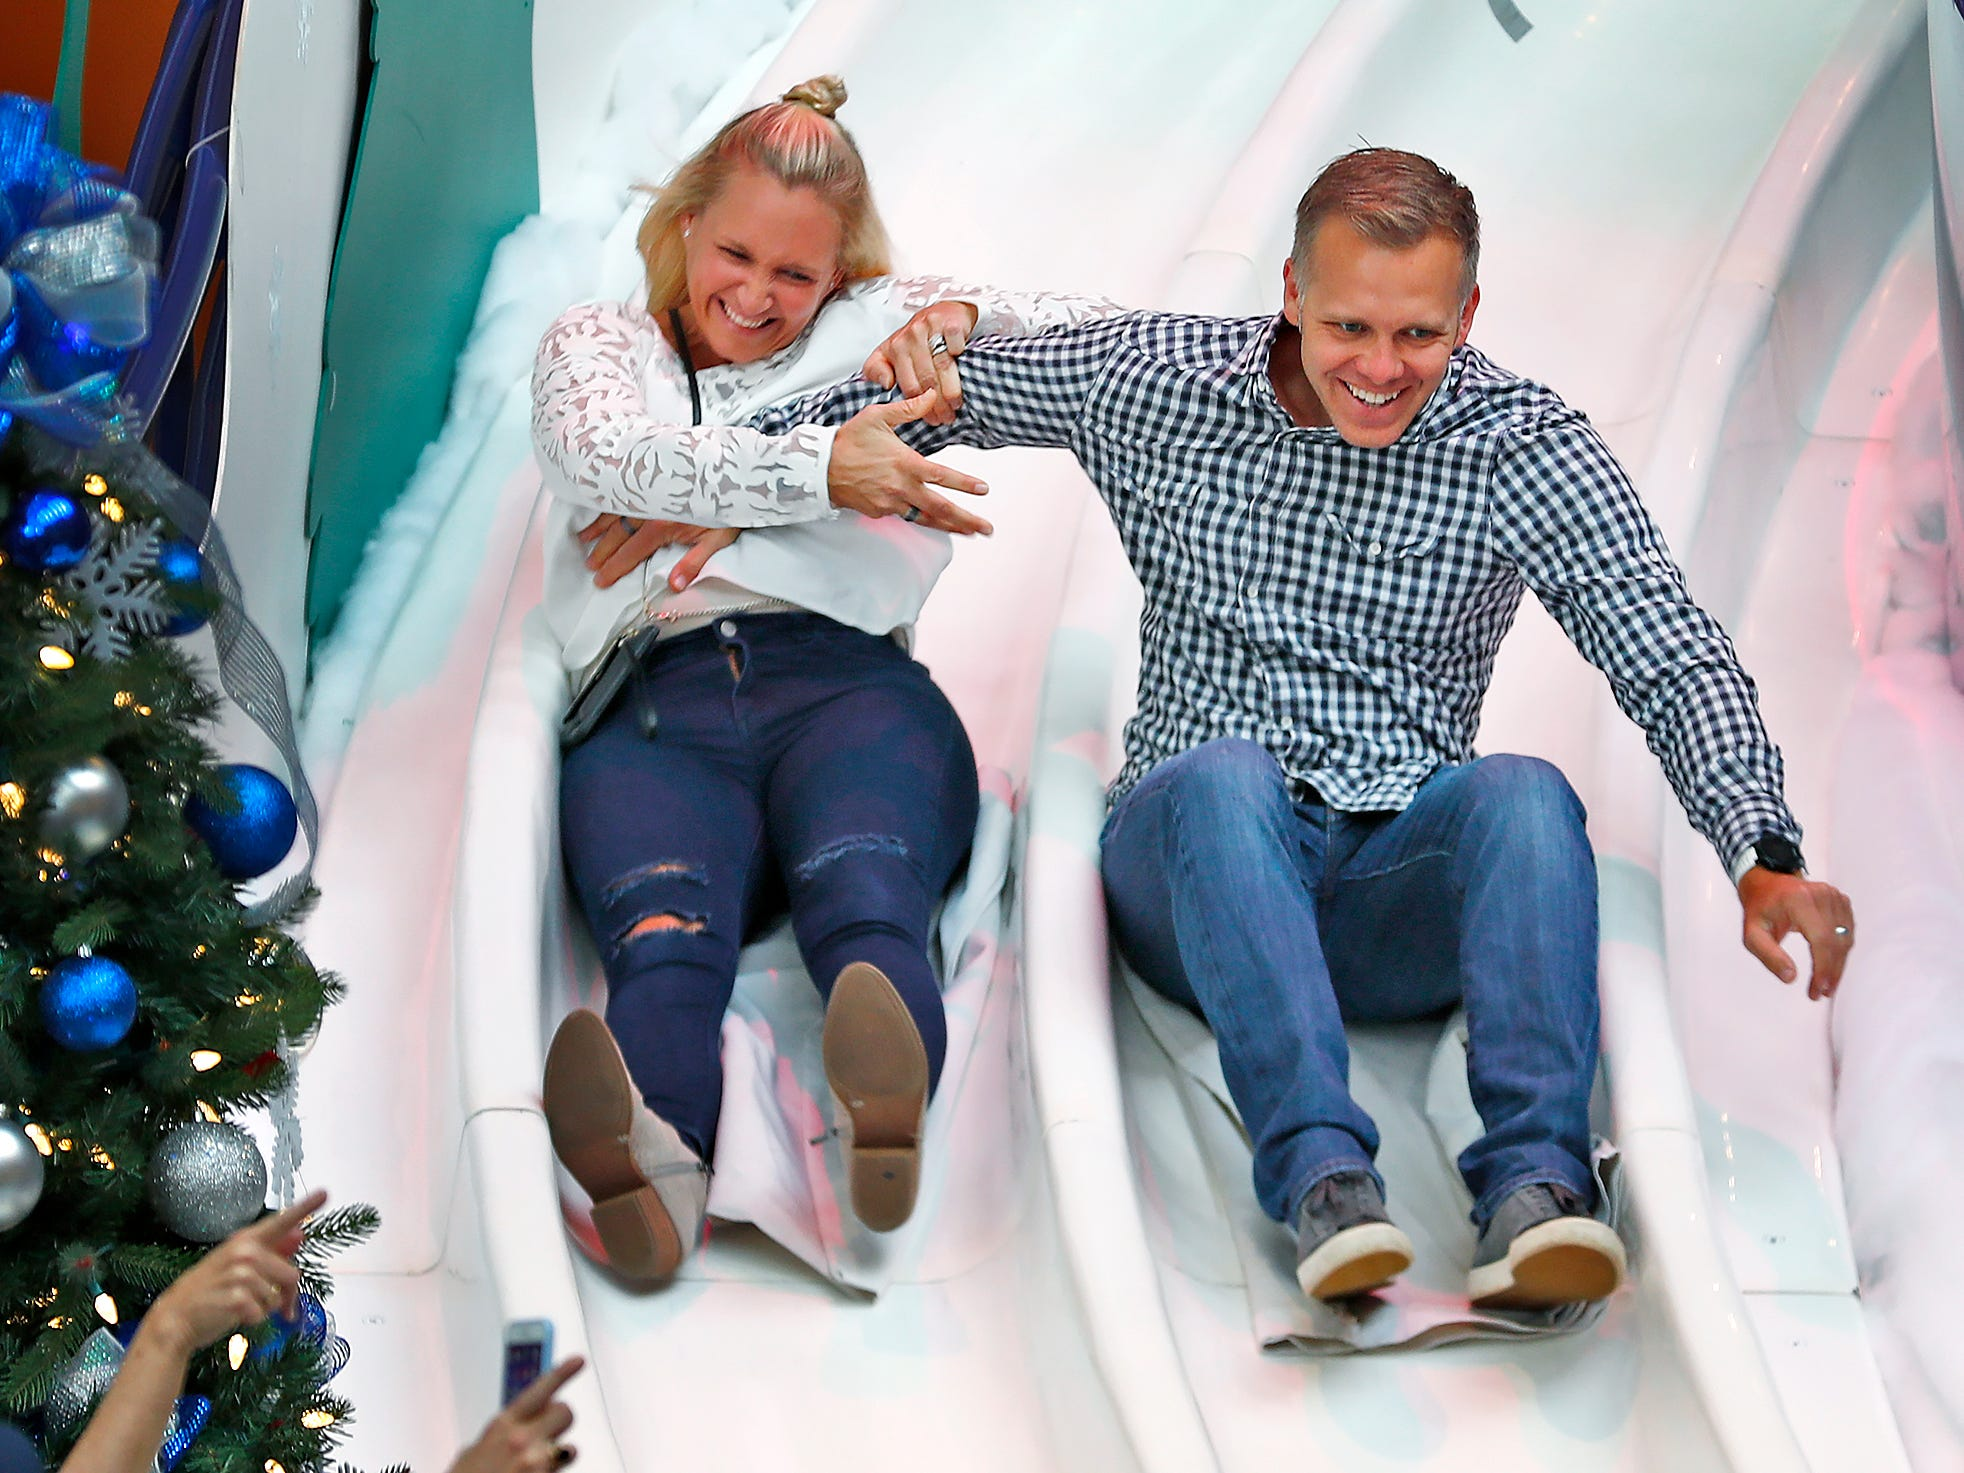 Heather and Ed Carpenter joke around as they slide down the Yule Slide at the opening of Jolly Days Winter Wonderland, at the Children's Museum of Indianapolis, Friday, Nov. 23, 2018.  Santa arrived at the Children's Museum earlier, in an IndyCar driven by racer Ed Carpenter, Friday, Nov. 23, 2018.